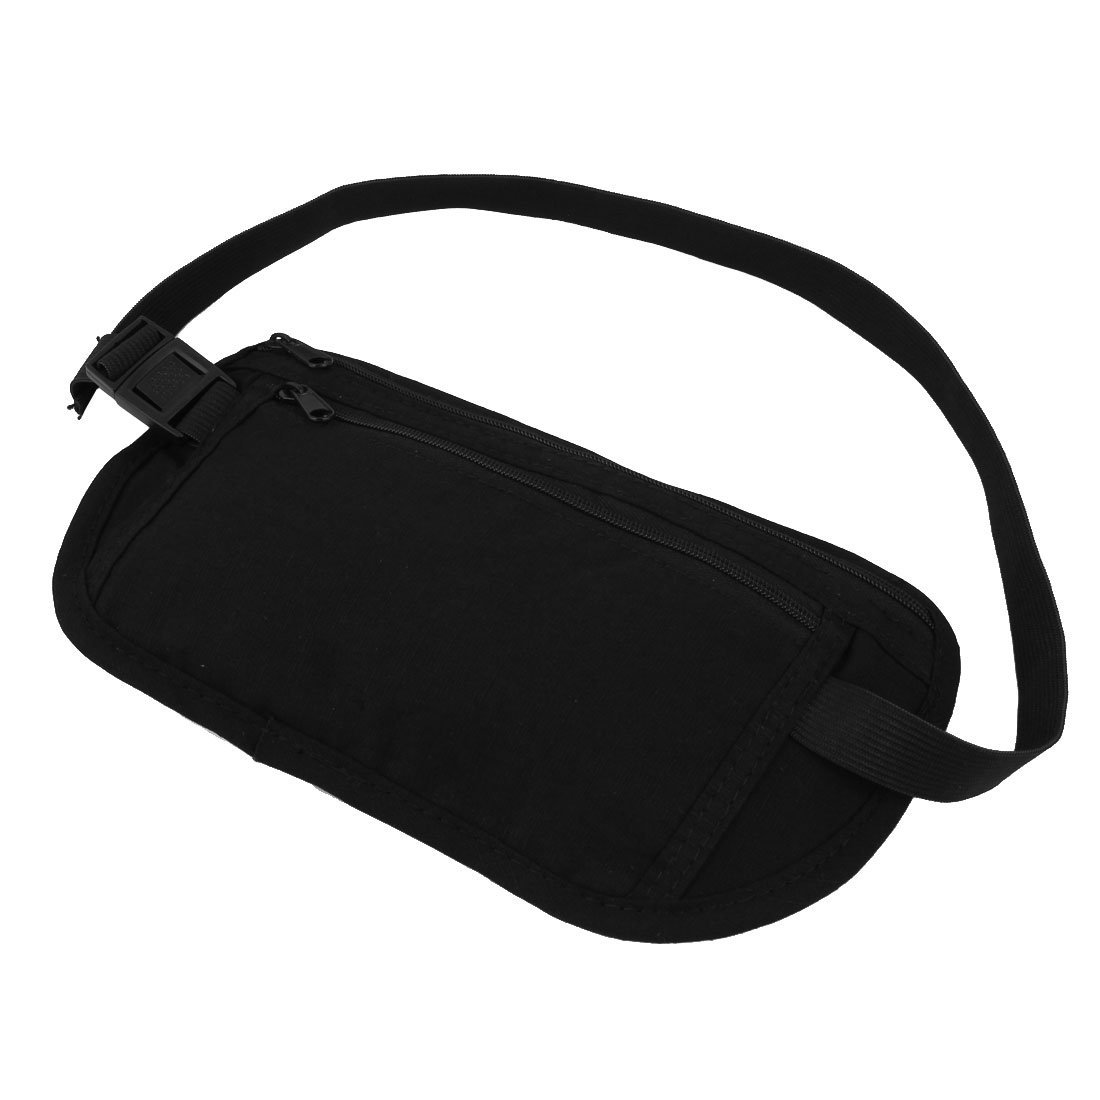 uxcell Nylon Outdoor Traveling Sports Water Resistant Hiking Backpack Waist Bag Black